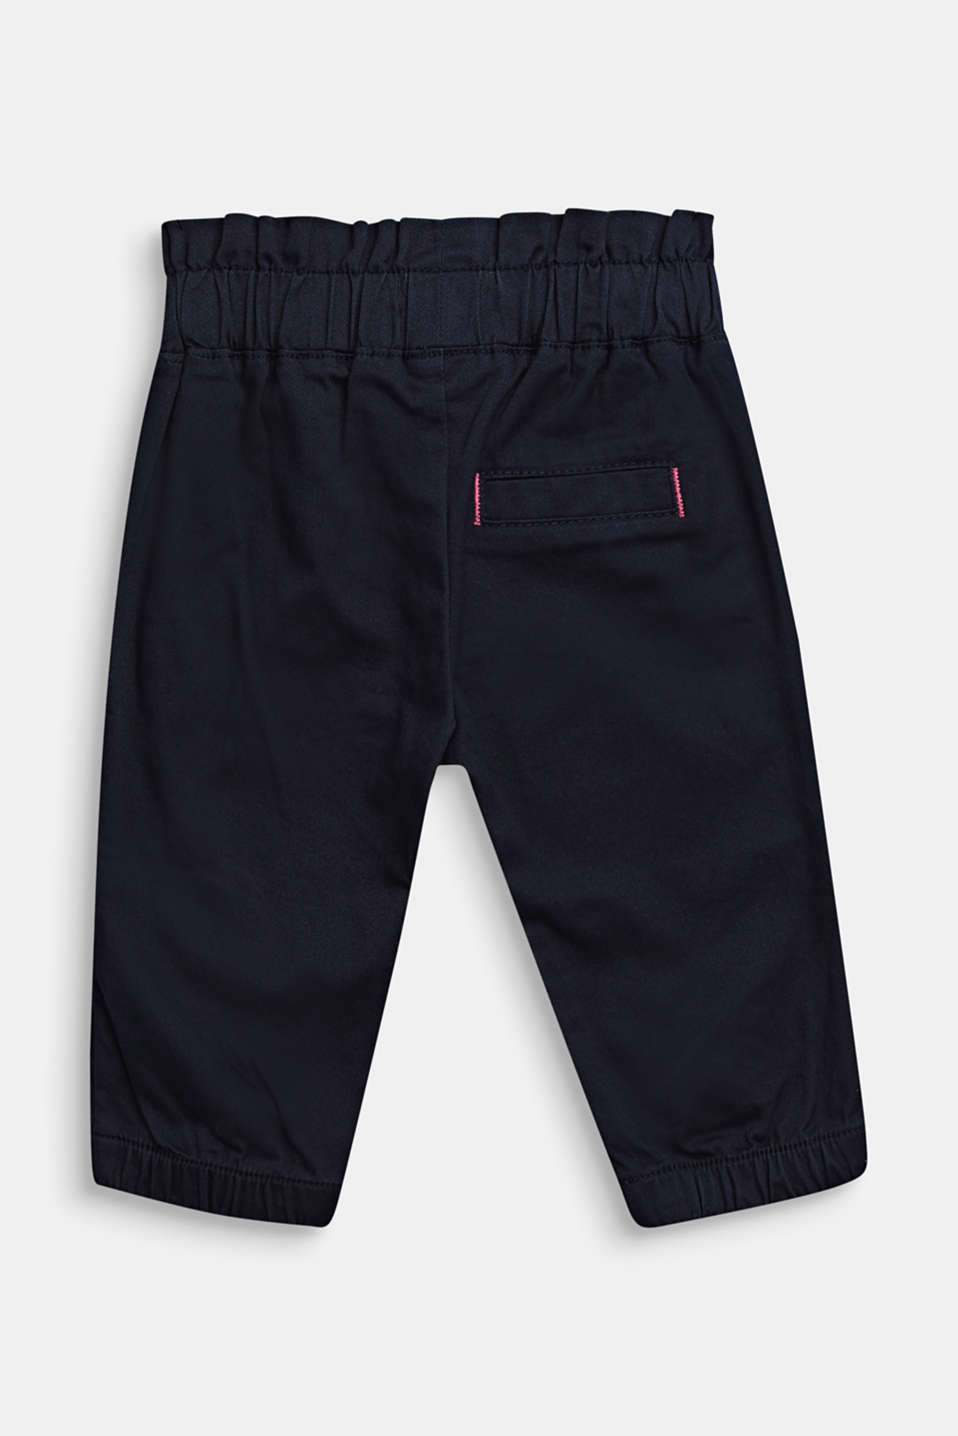 Woven trousers in a tracksuit bottom style, LCMIDNIGHT BLUE, detail image number 2